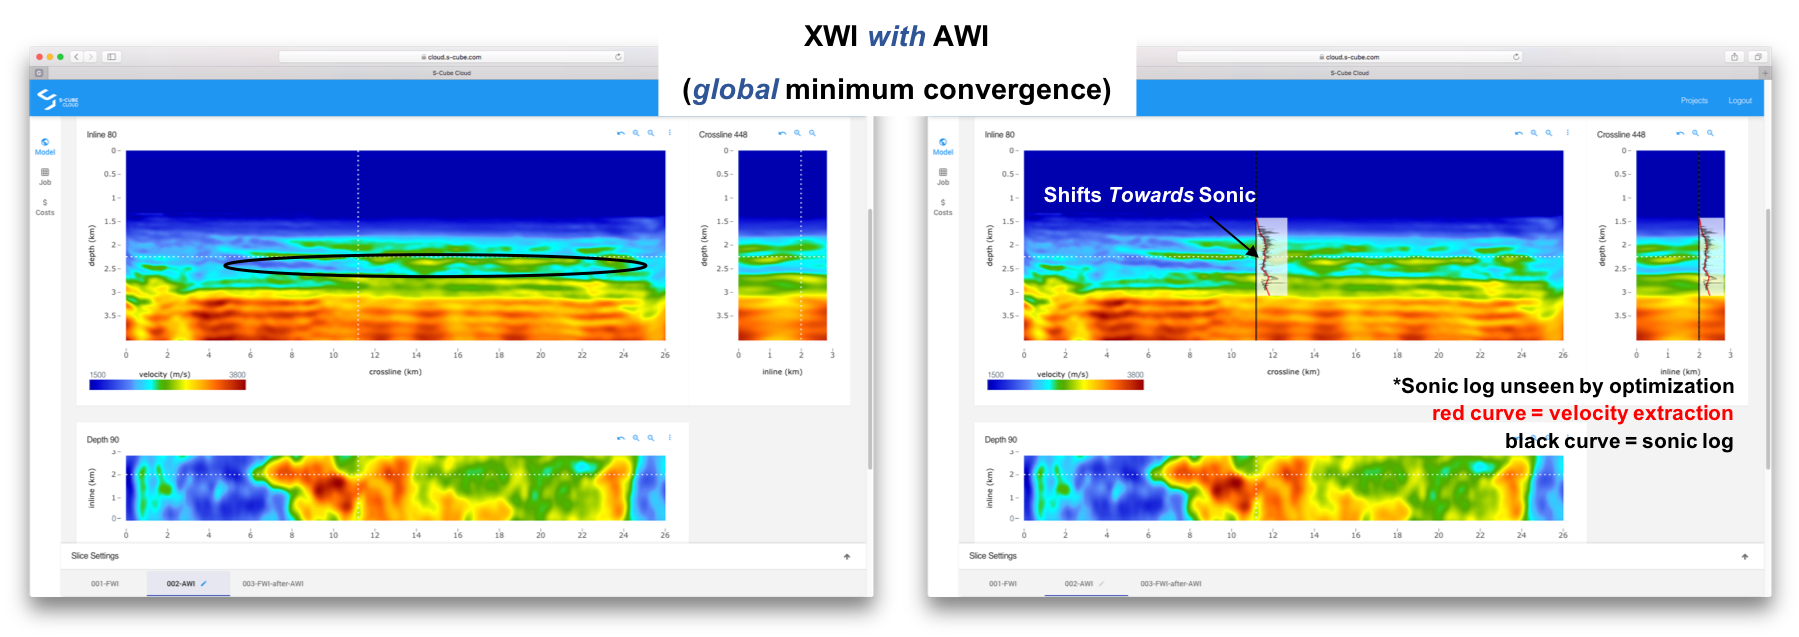 North West Shelf Australia use case showing global convergence maintaining accuracy down to below 3km applying XWI with an adaptive cost function.